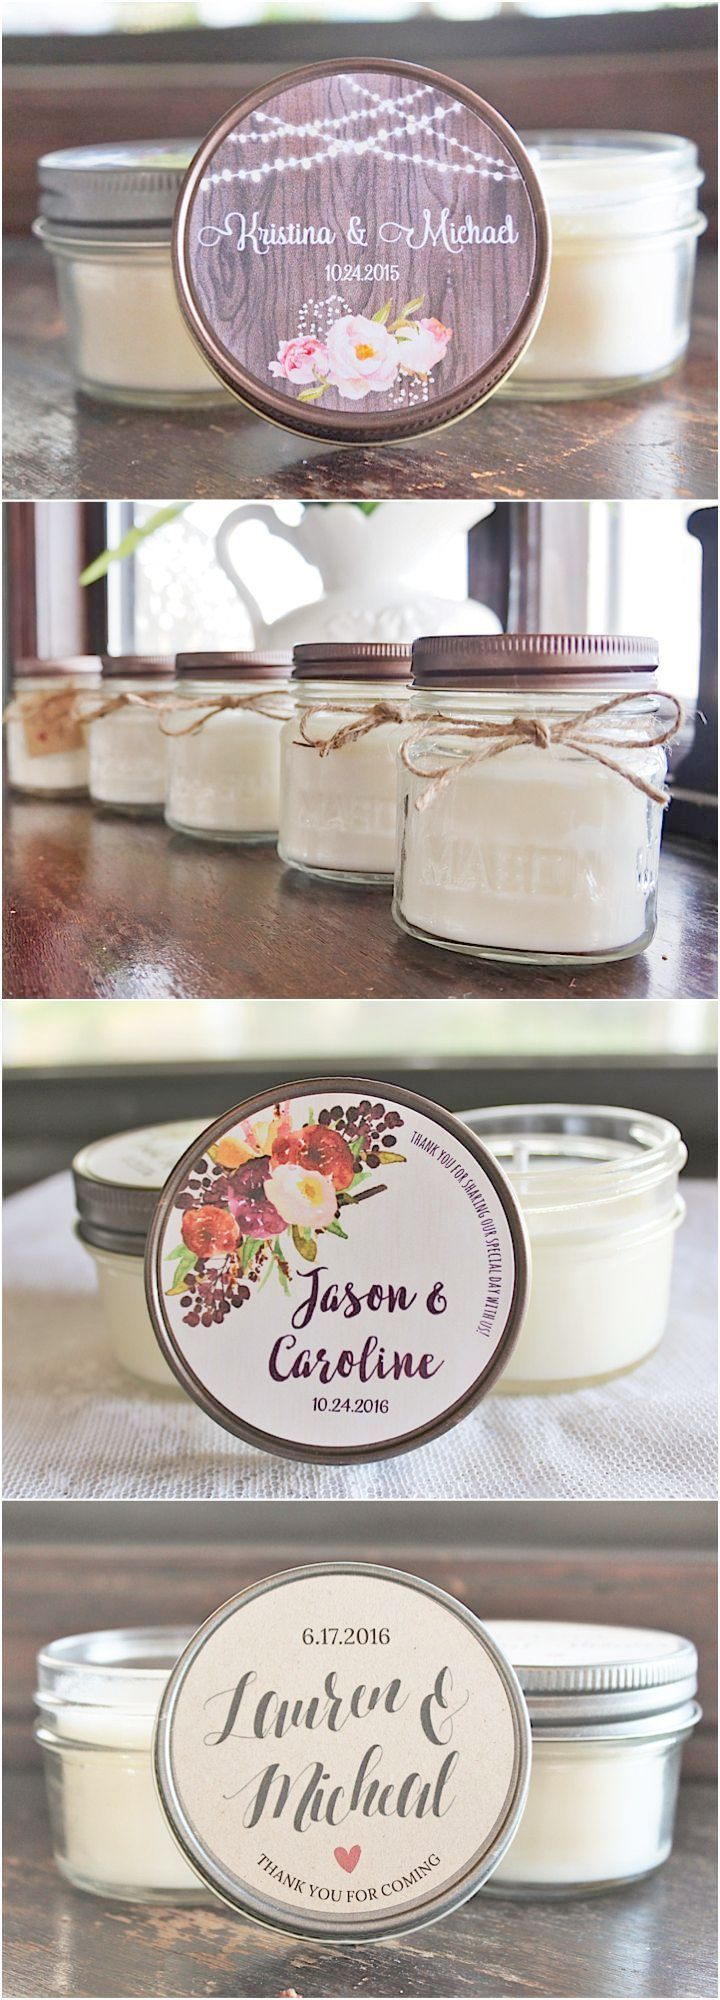 Diy wedding favors seed packets wedding favors glass coasters